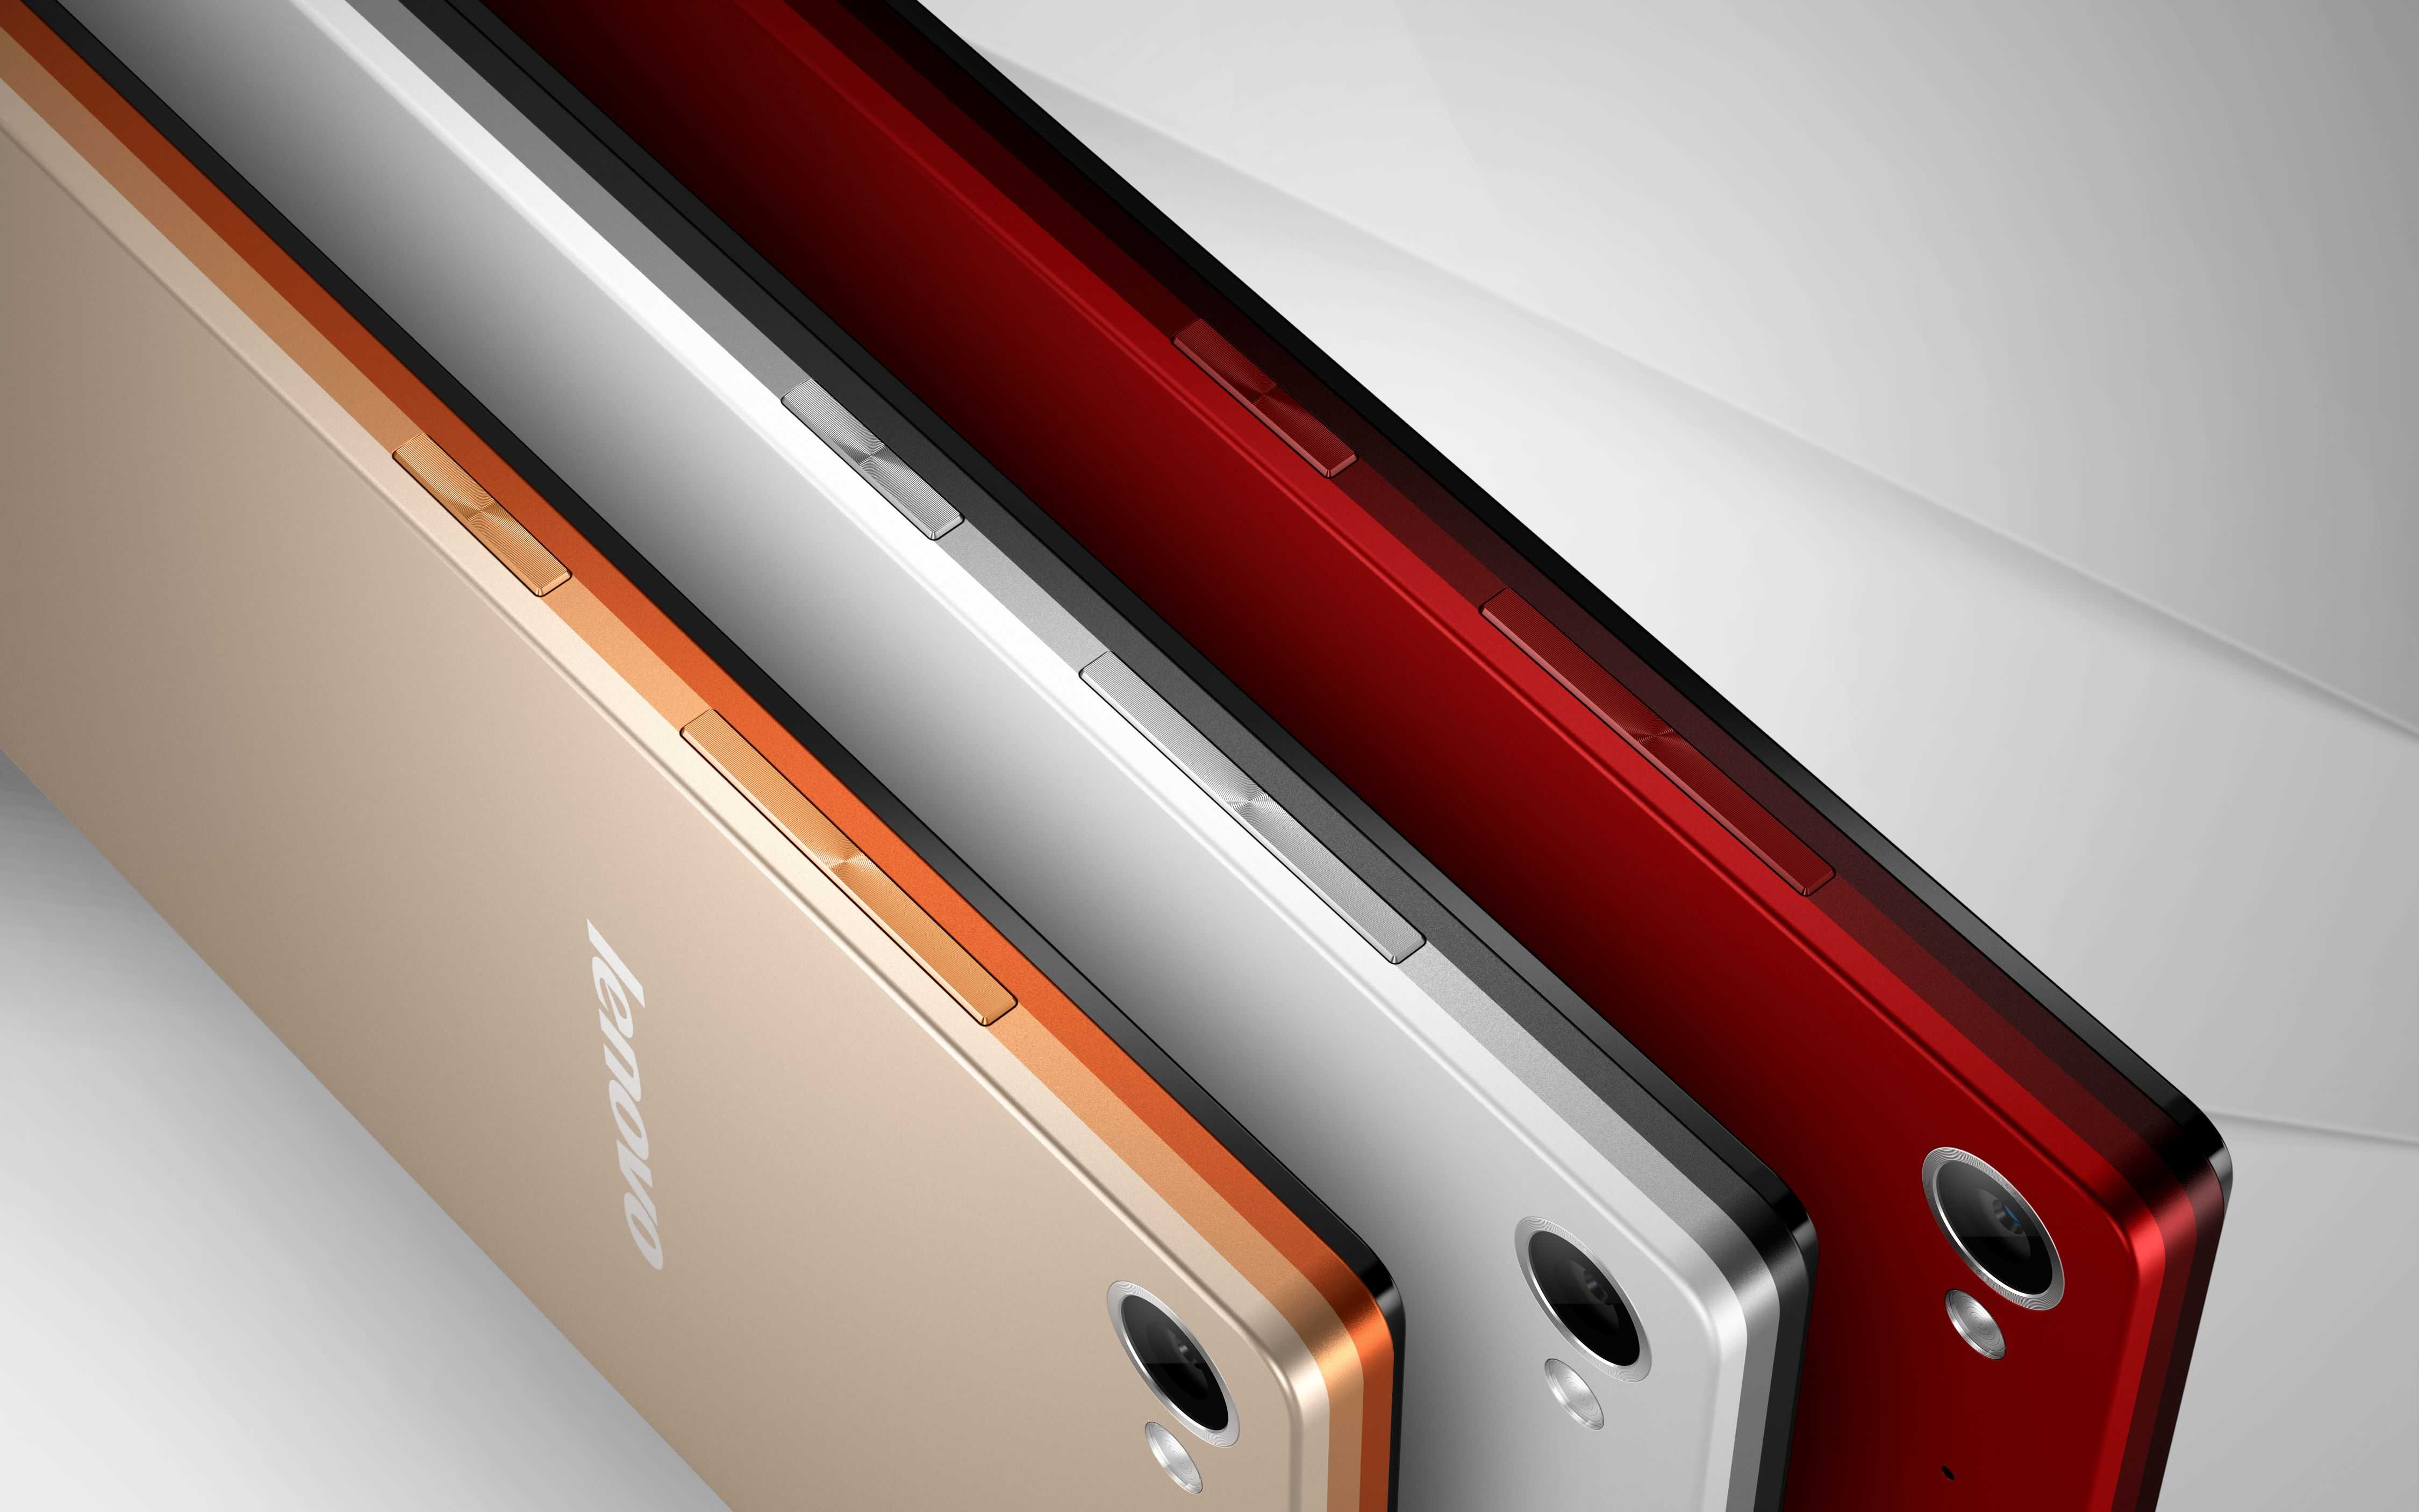 TOP 5 the thinnest phones